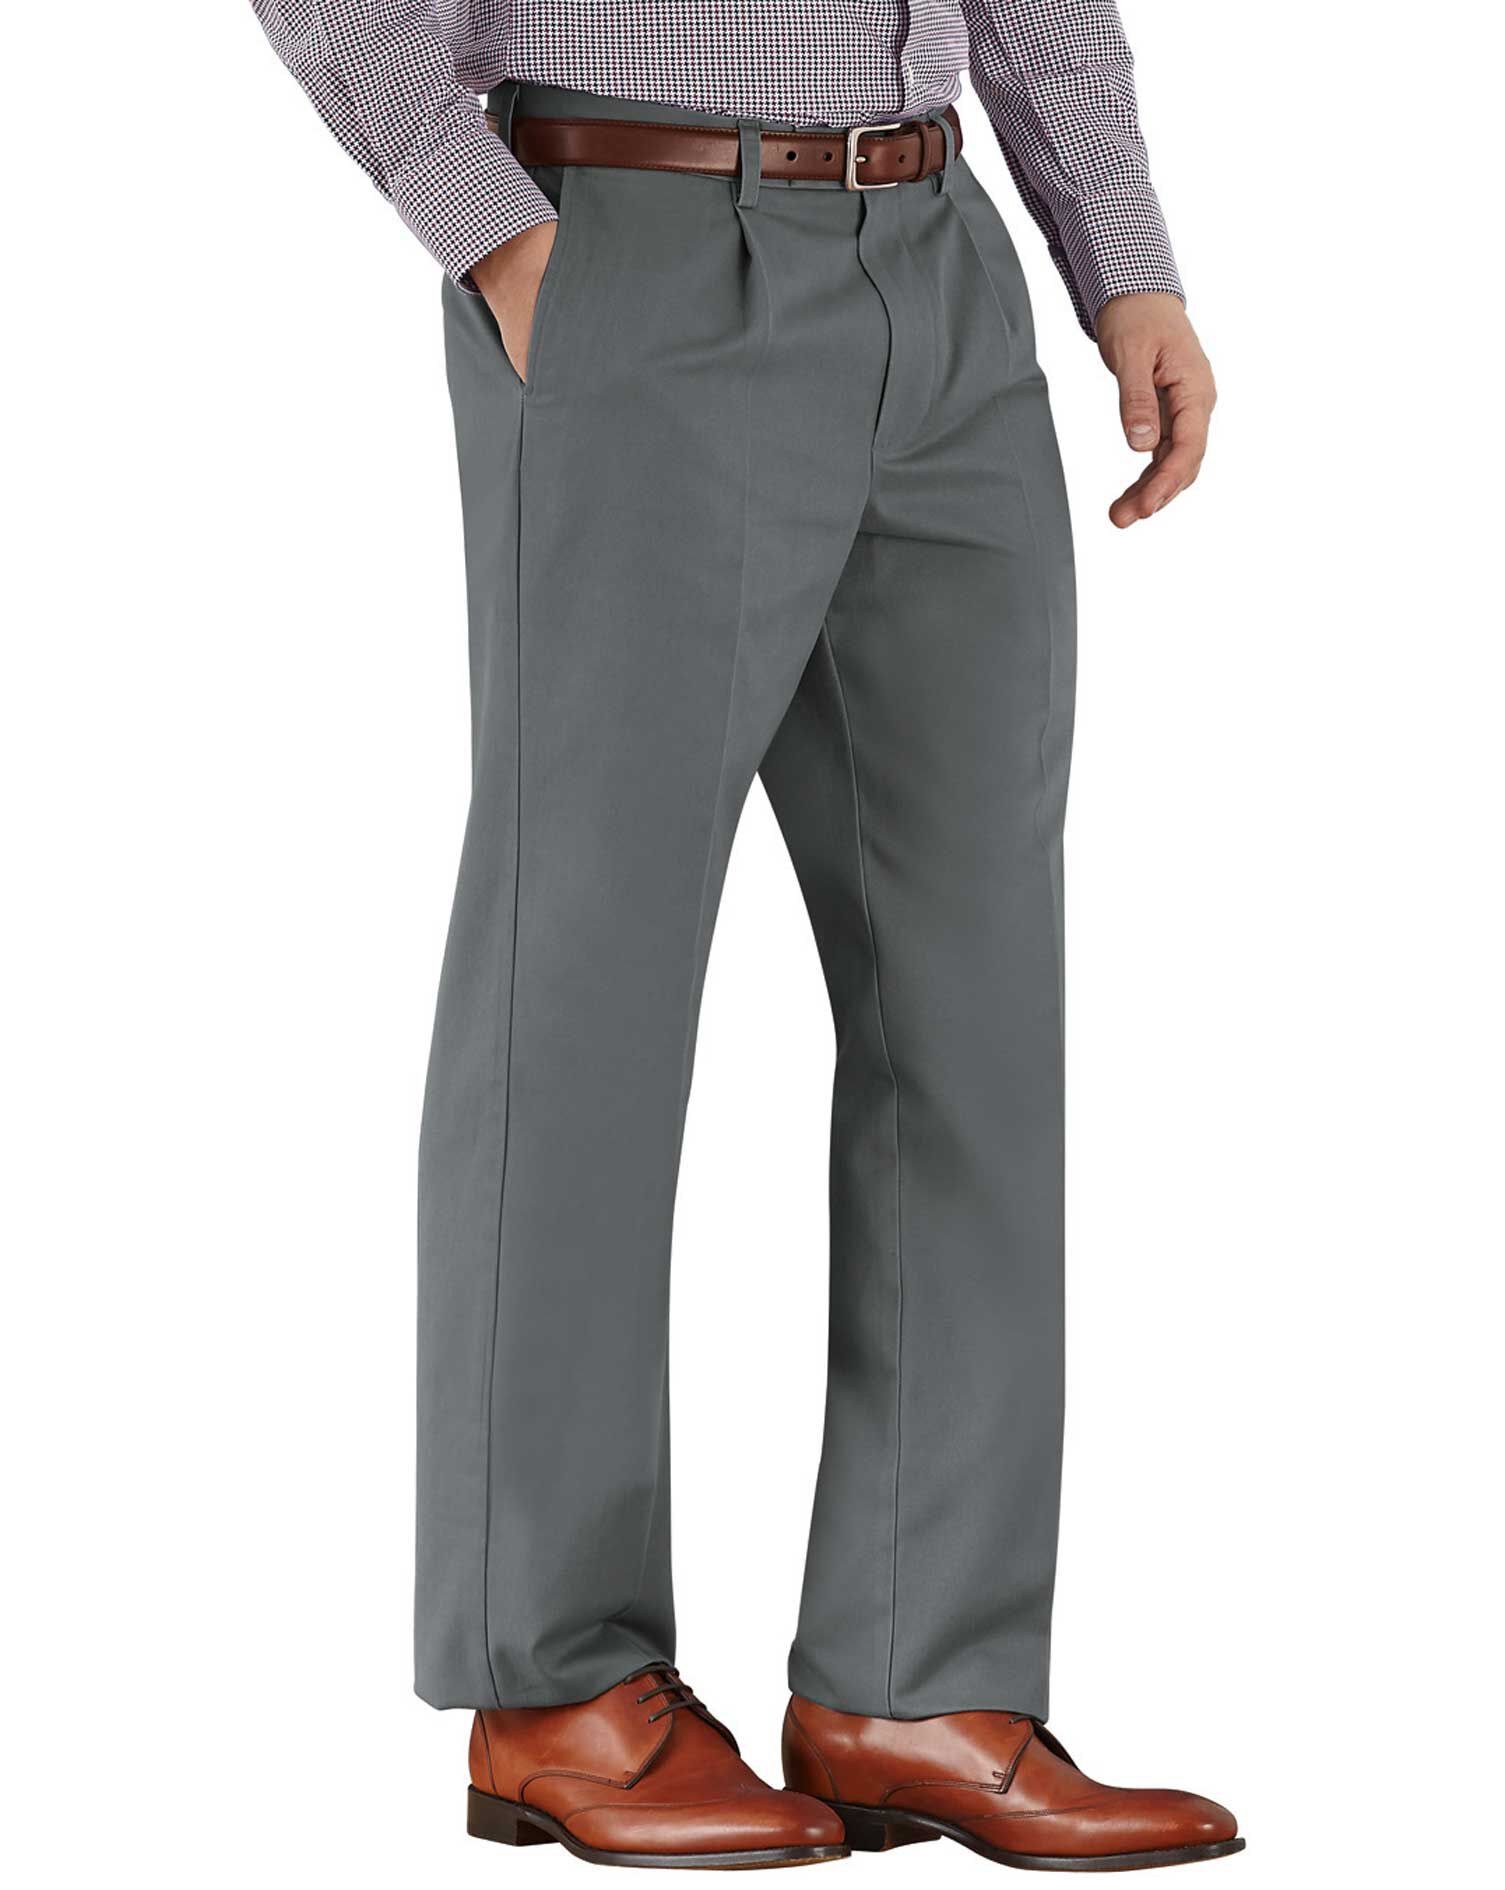 Grey Classic Fit Single Pleat Non-Iron Cotton Chino Trousers Size W40 L30 by Charles Tyrwhitt